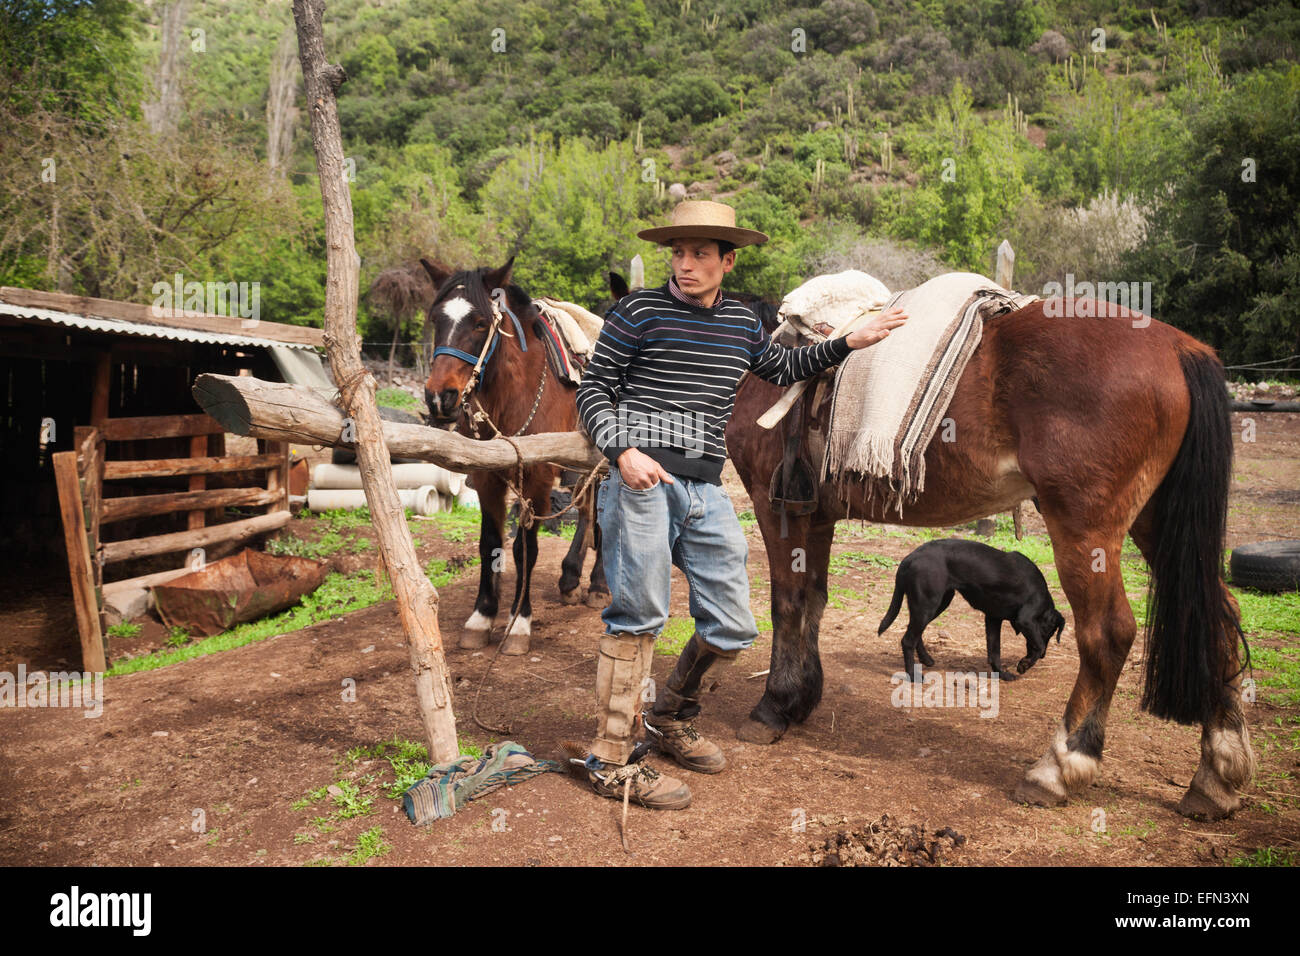 Chilean cowboy leans against his horse on a ranch in El Toyo region of Cajon del Maipo, Chile, South America - Stock Image